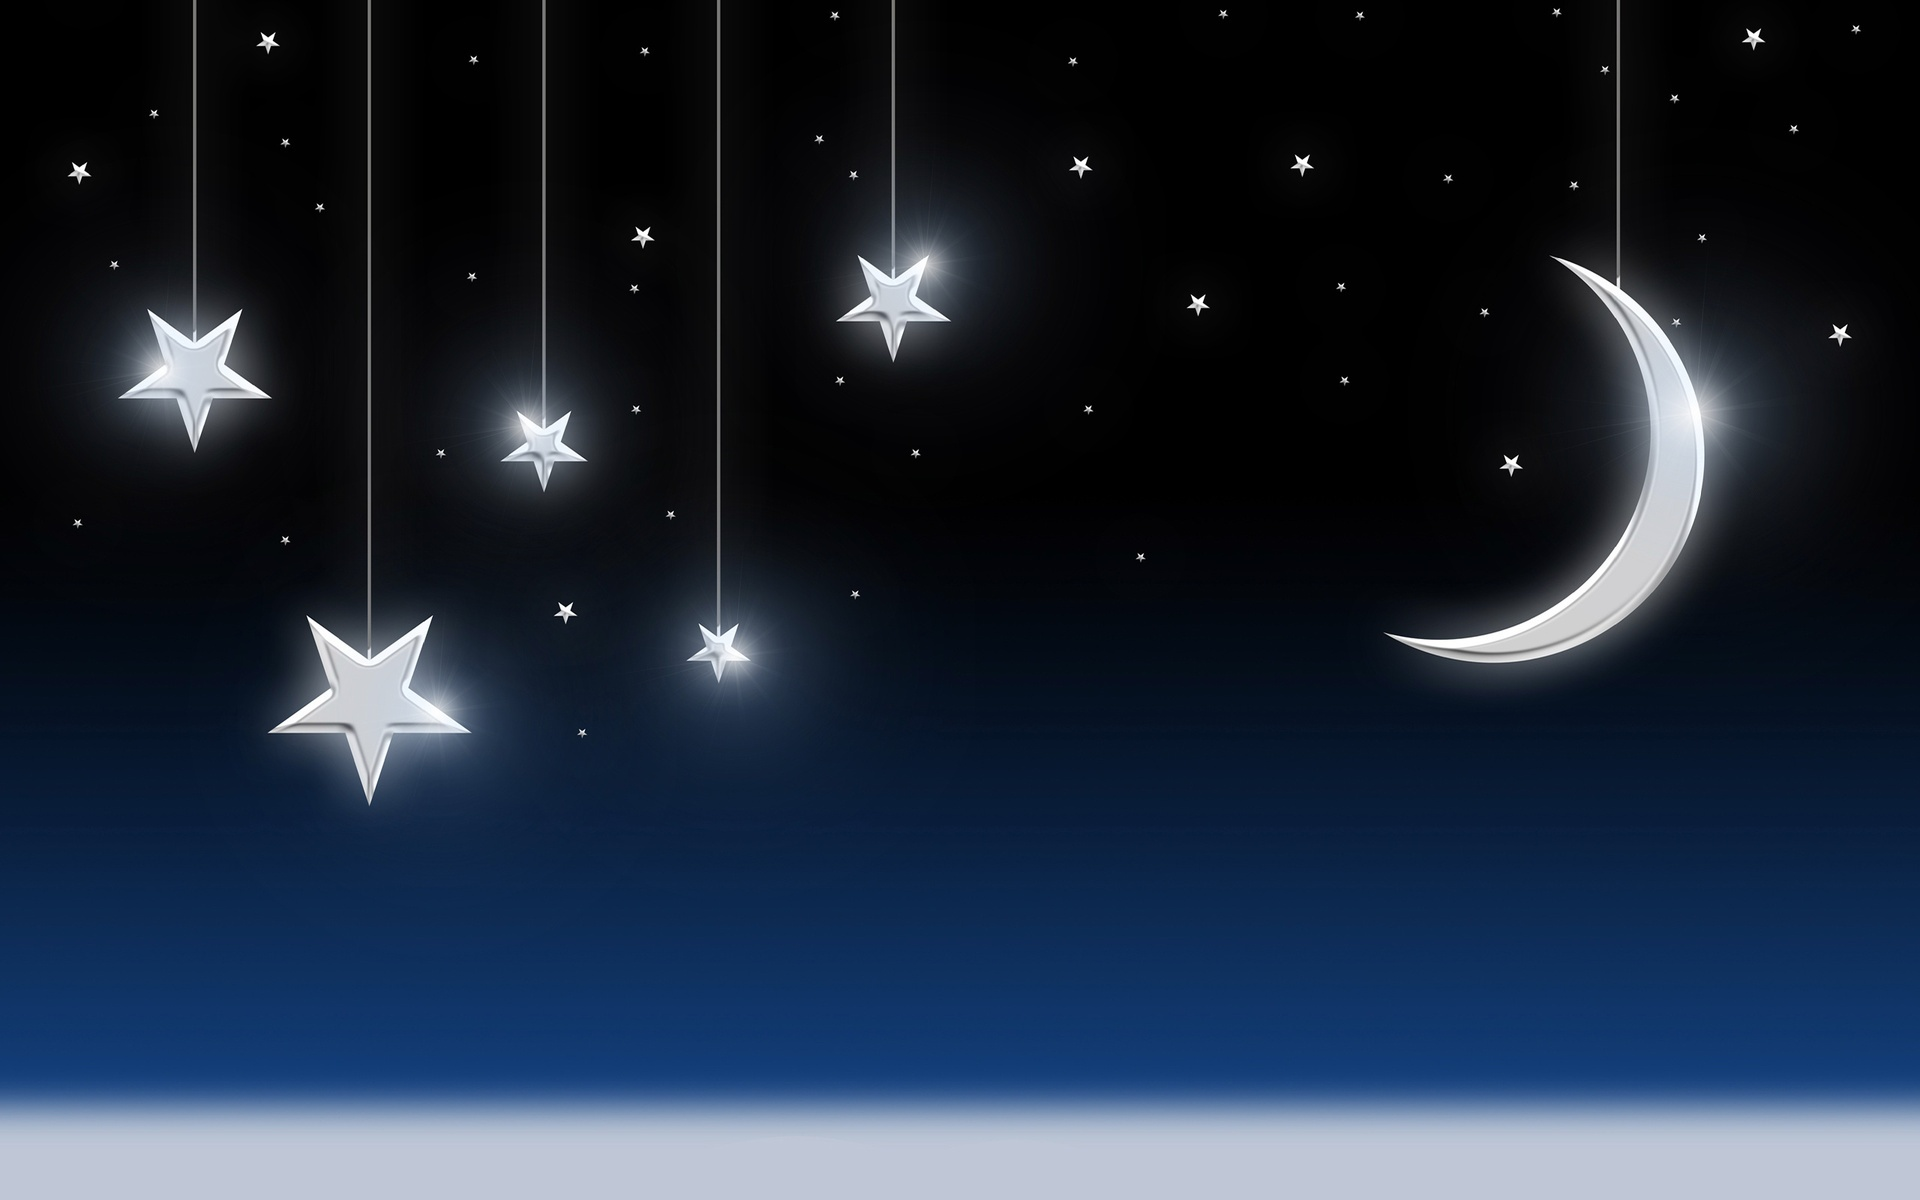 Sky With Moon And Stars 1920 x 1200 Download Close 1920x1200